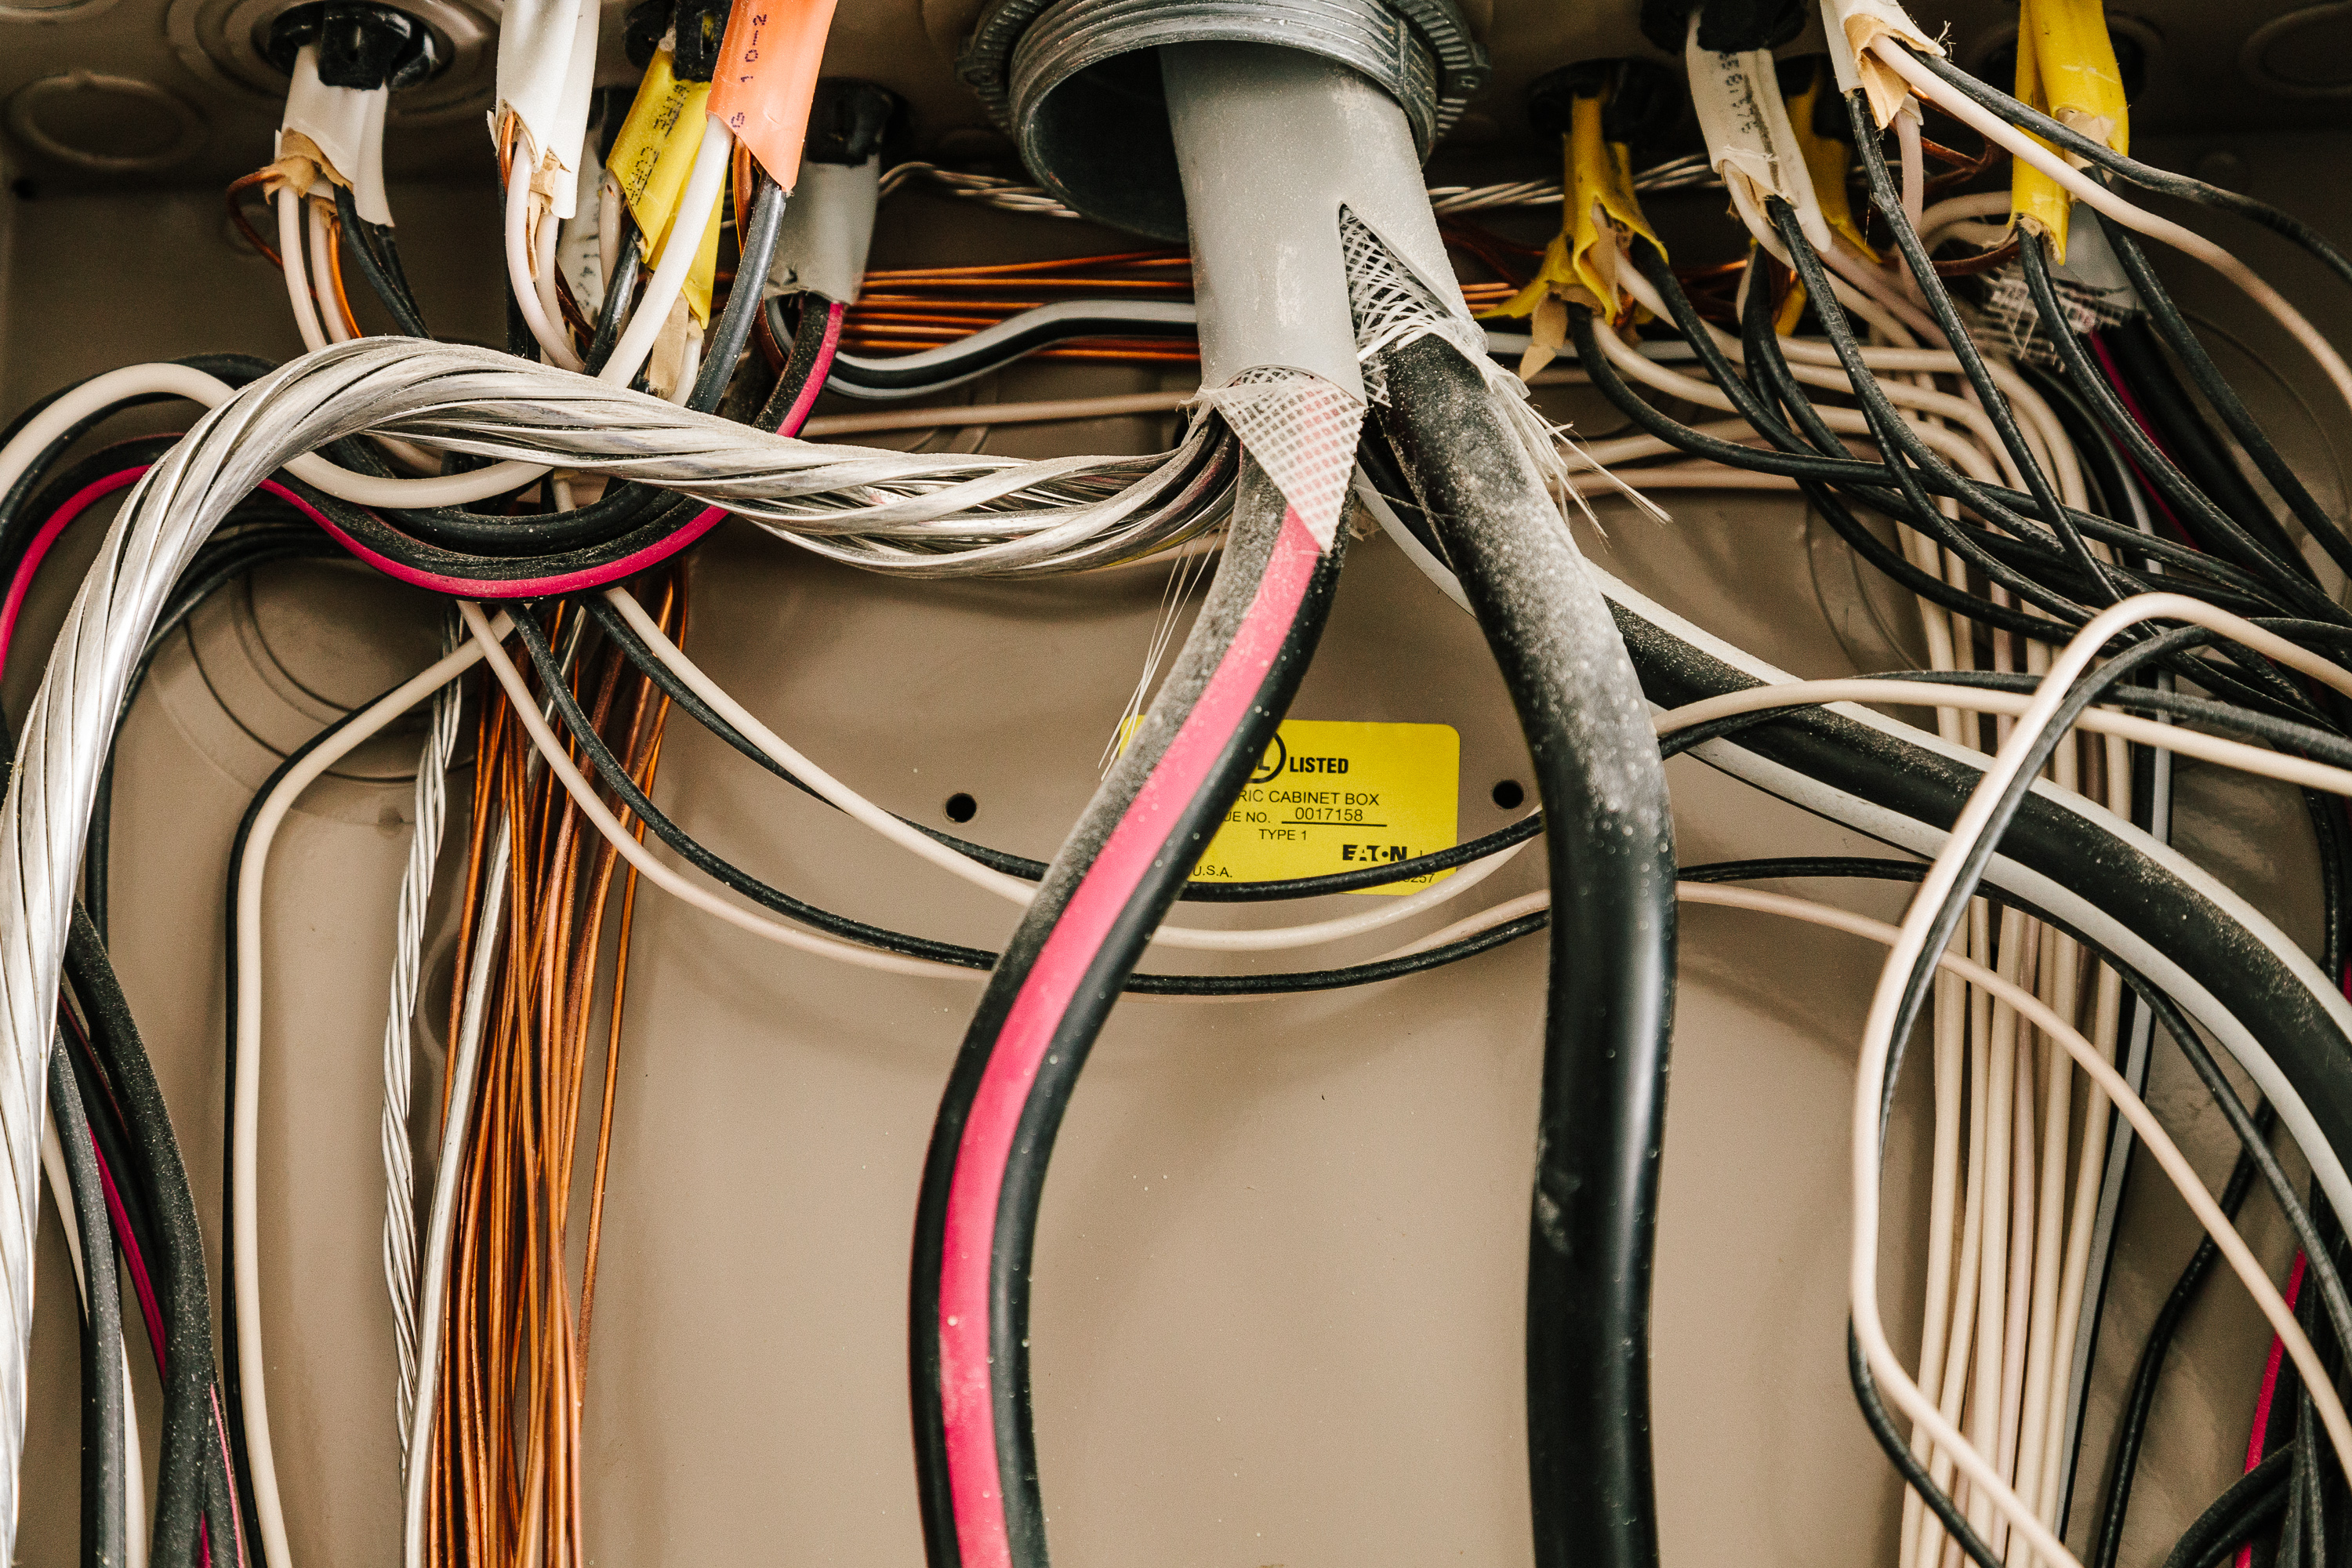 Image of electrical wires and more